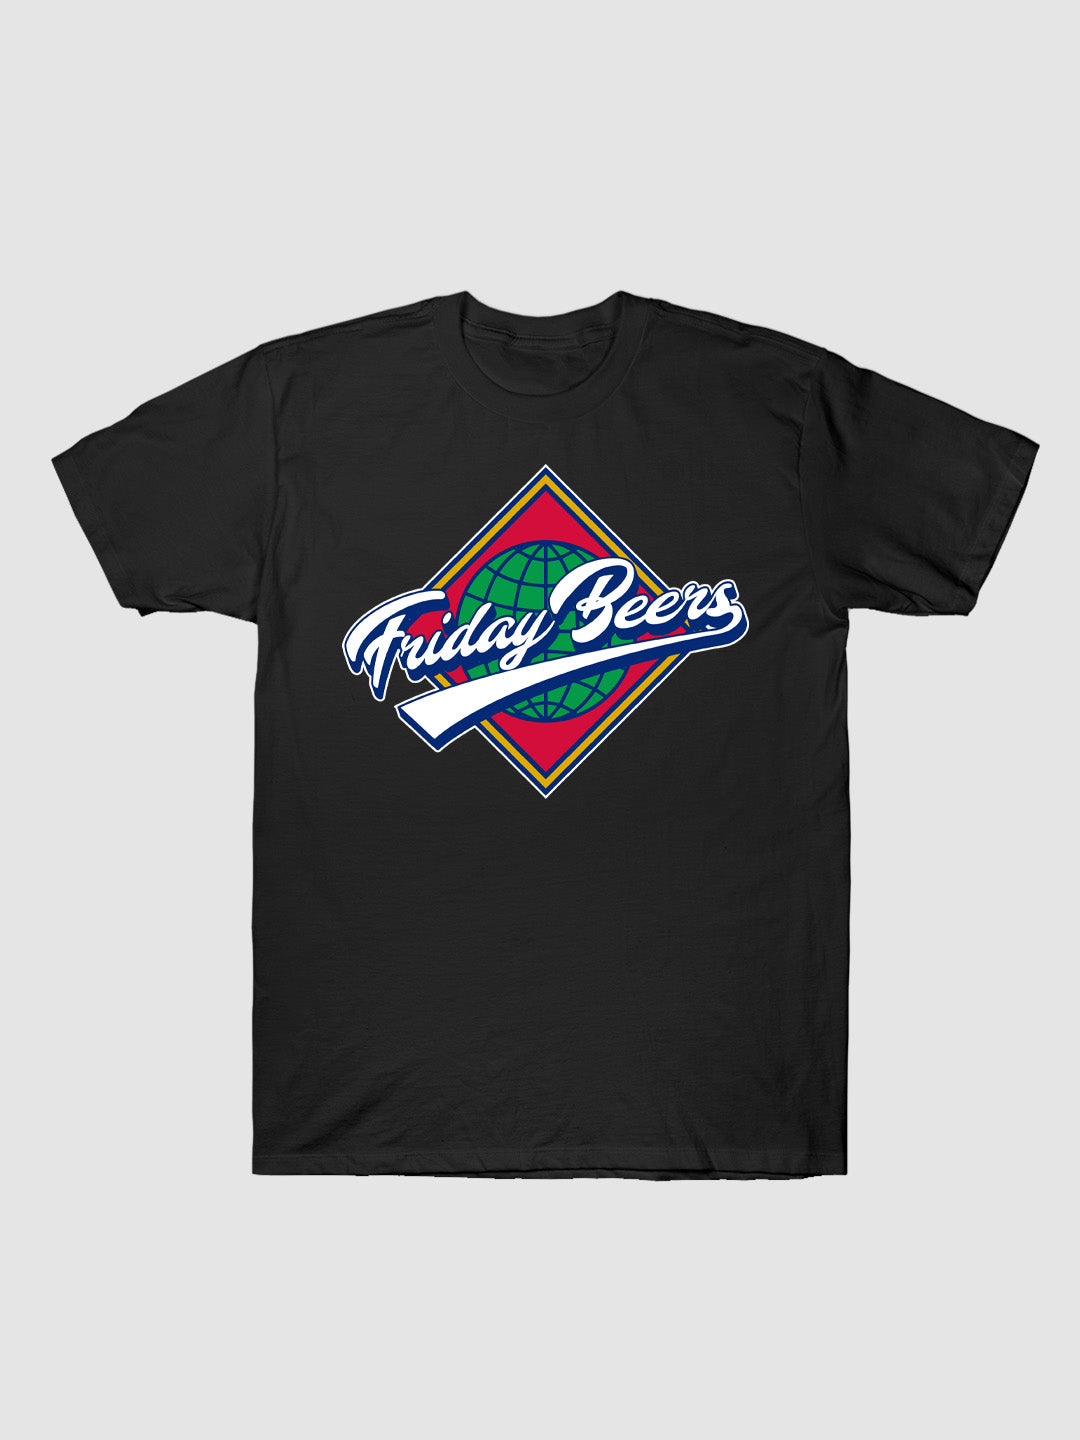 Friday Beers World Series T-Shirt